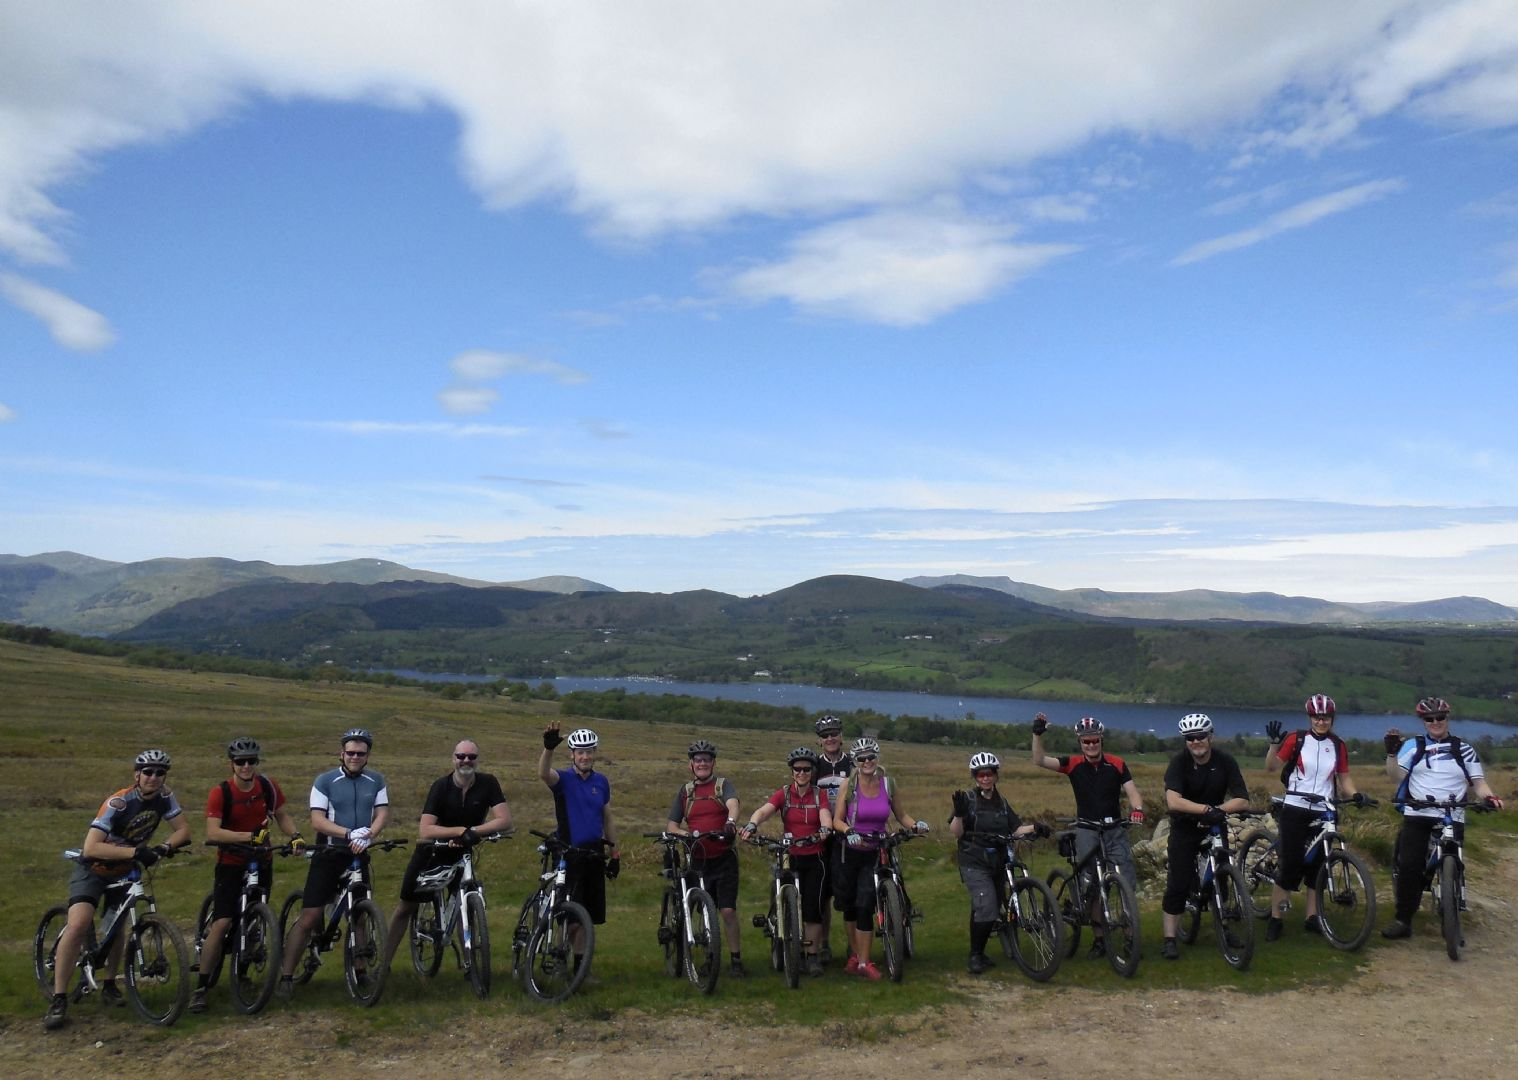 _Customer.53611.16232.jpg - UK - Lake District - Ullswater - Guided Mountain Bike Weekend - Mountain Biking